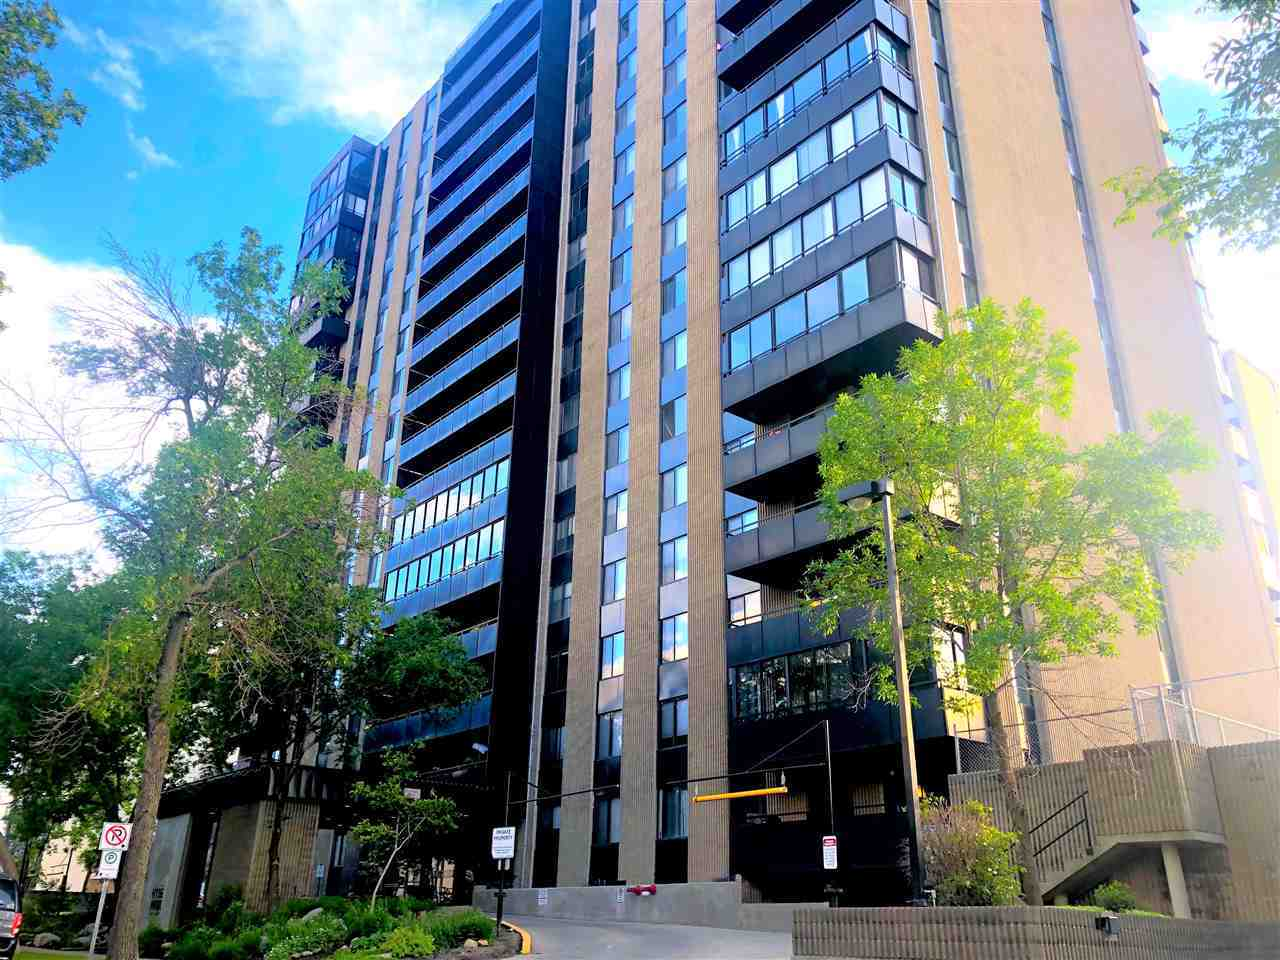 Photo of #306 10160 115 St NW